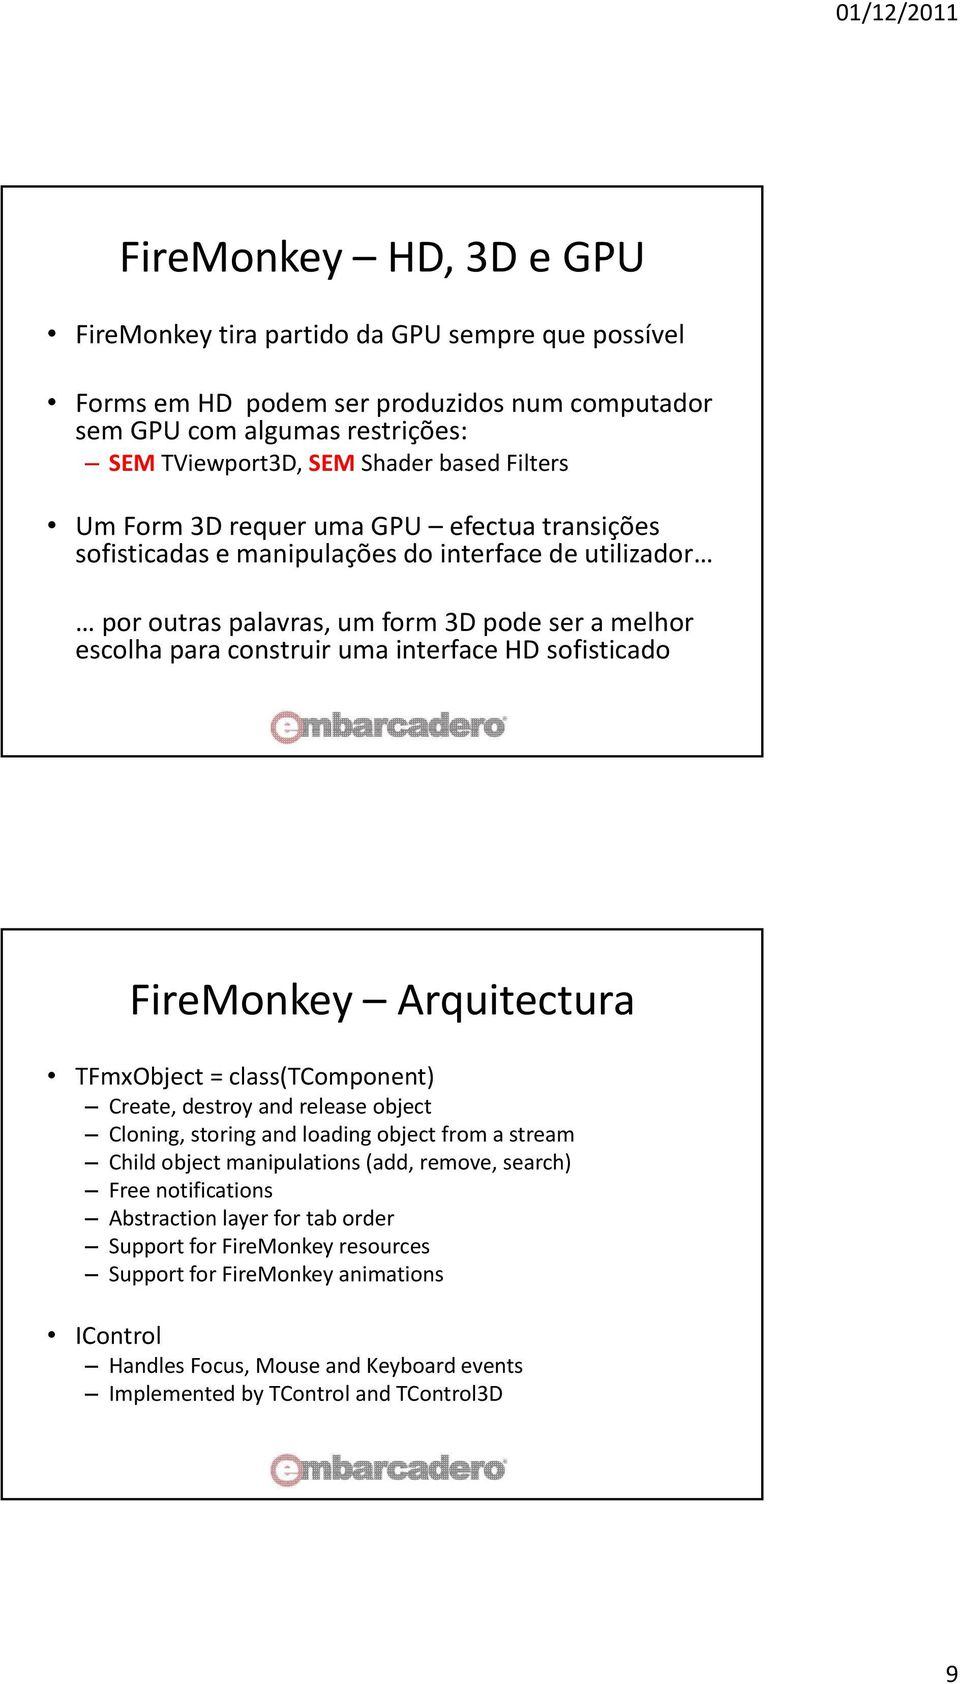 sofisticado FireMonkey Arquitectura TFmxObject = class(tcomponent) Create, destroy and release object Cloning, storing and loading object from a stream Child object manipulations (add, remove,